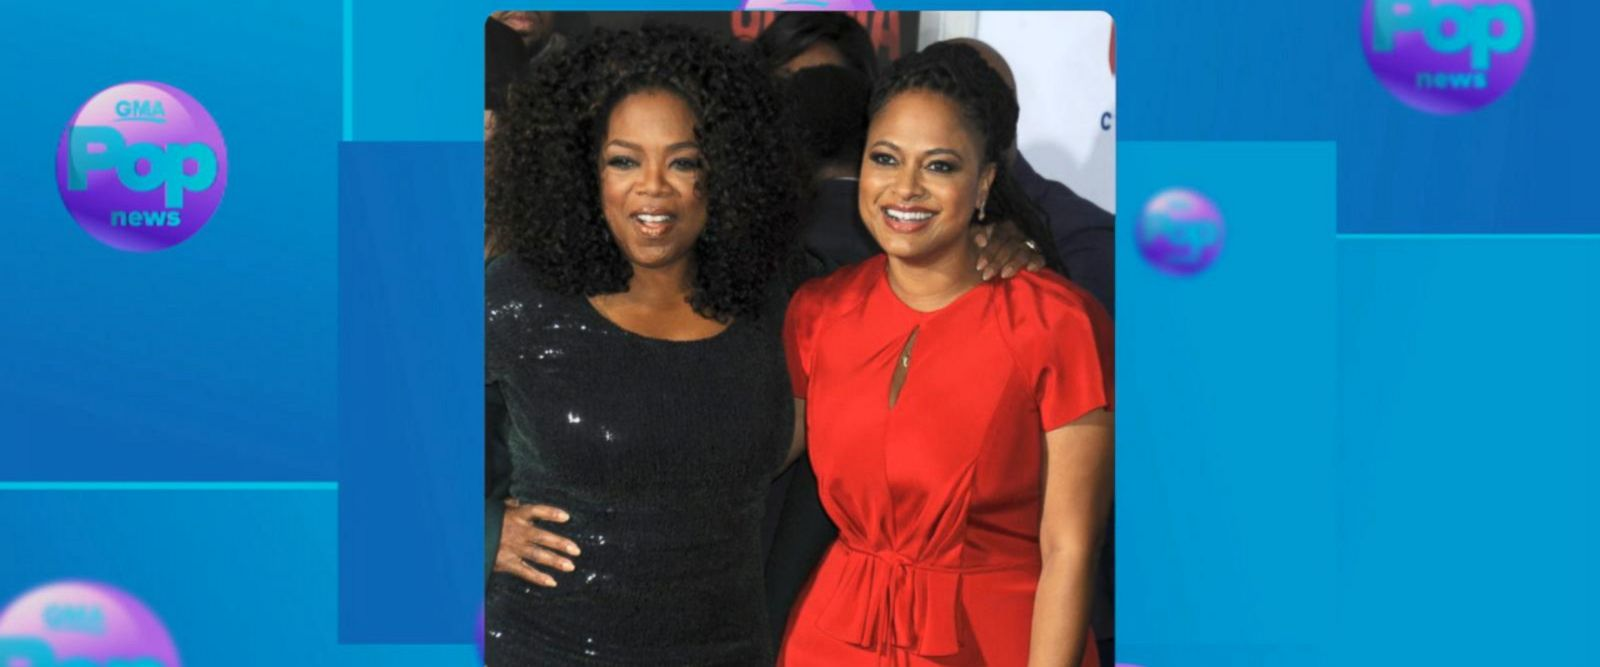 VIDEO: Ava Duvernay partners with Oprah Winfrey's production company